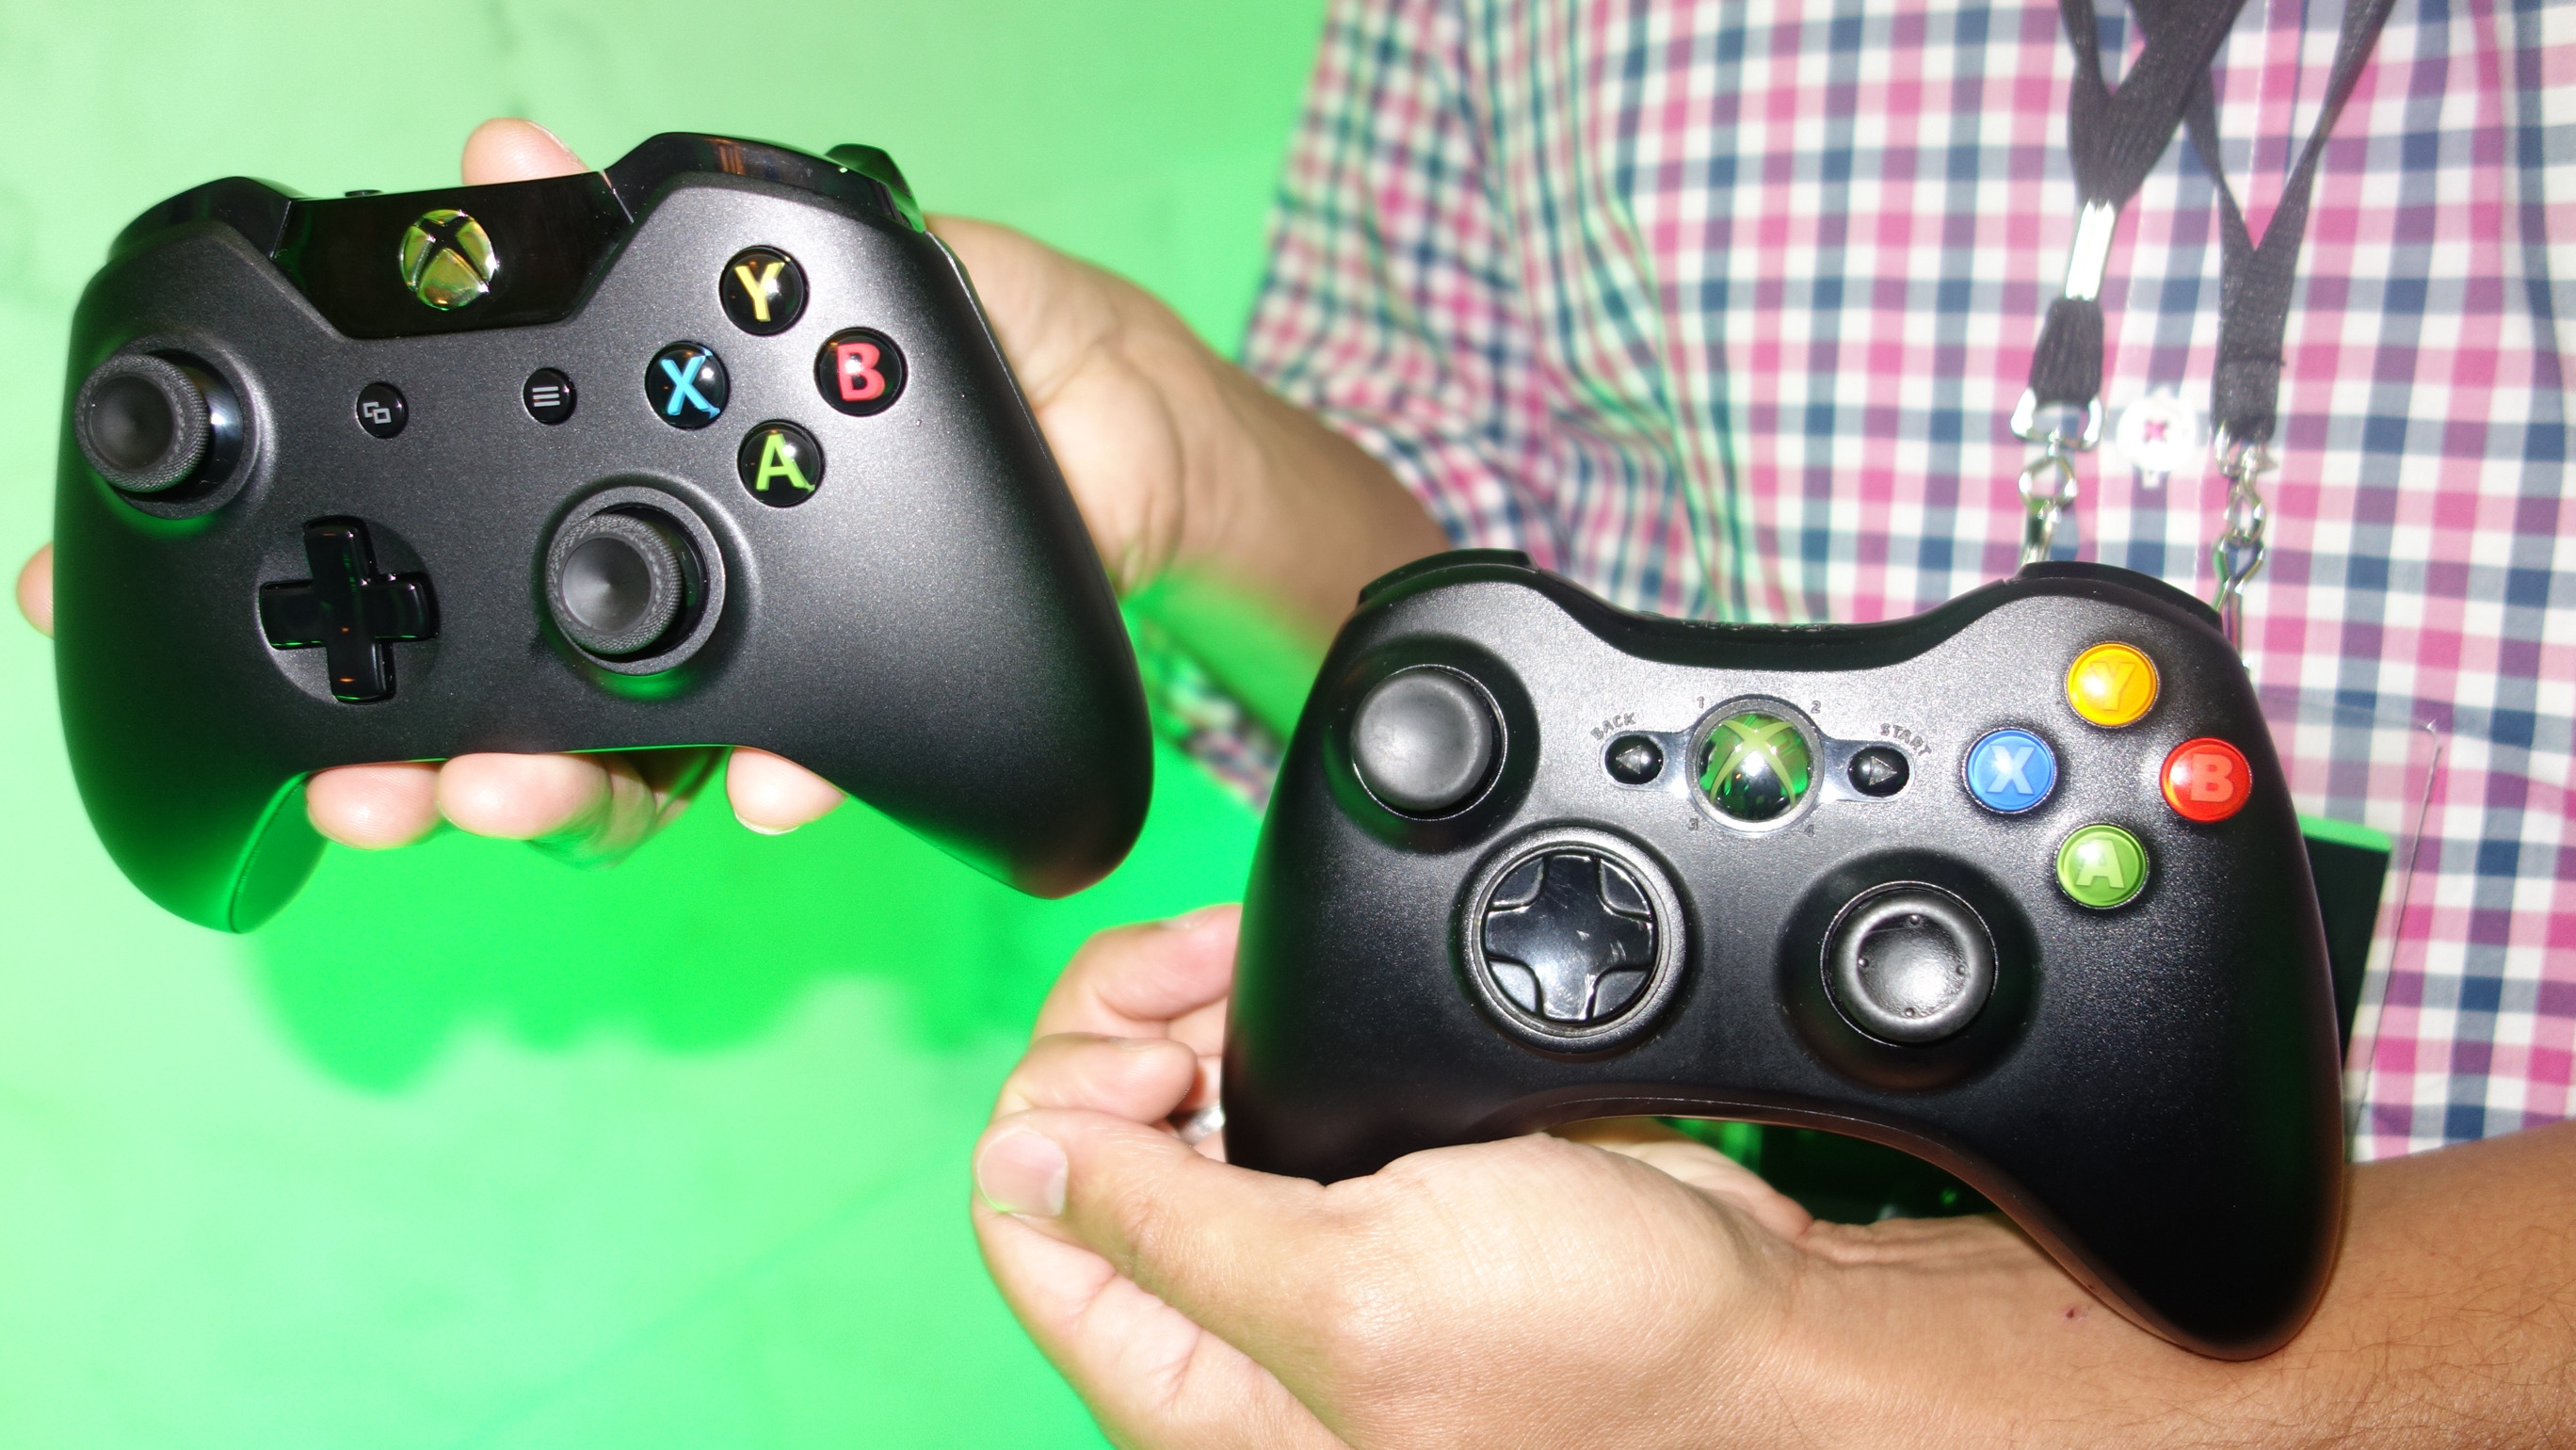 Side-by-side: Xbox One gamepad vs Xbox 360 gamepad | TechRadar